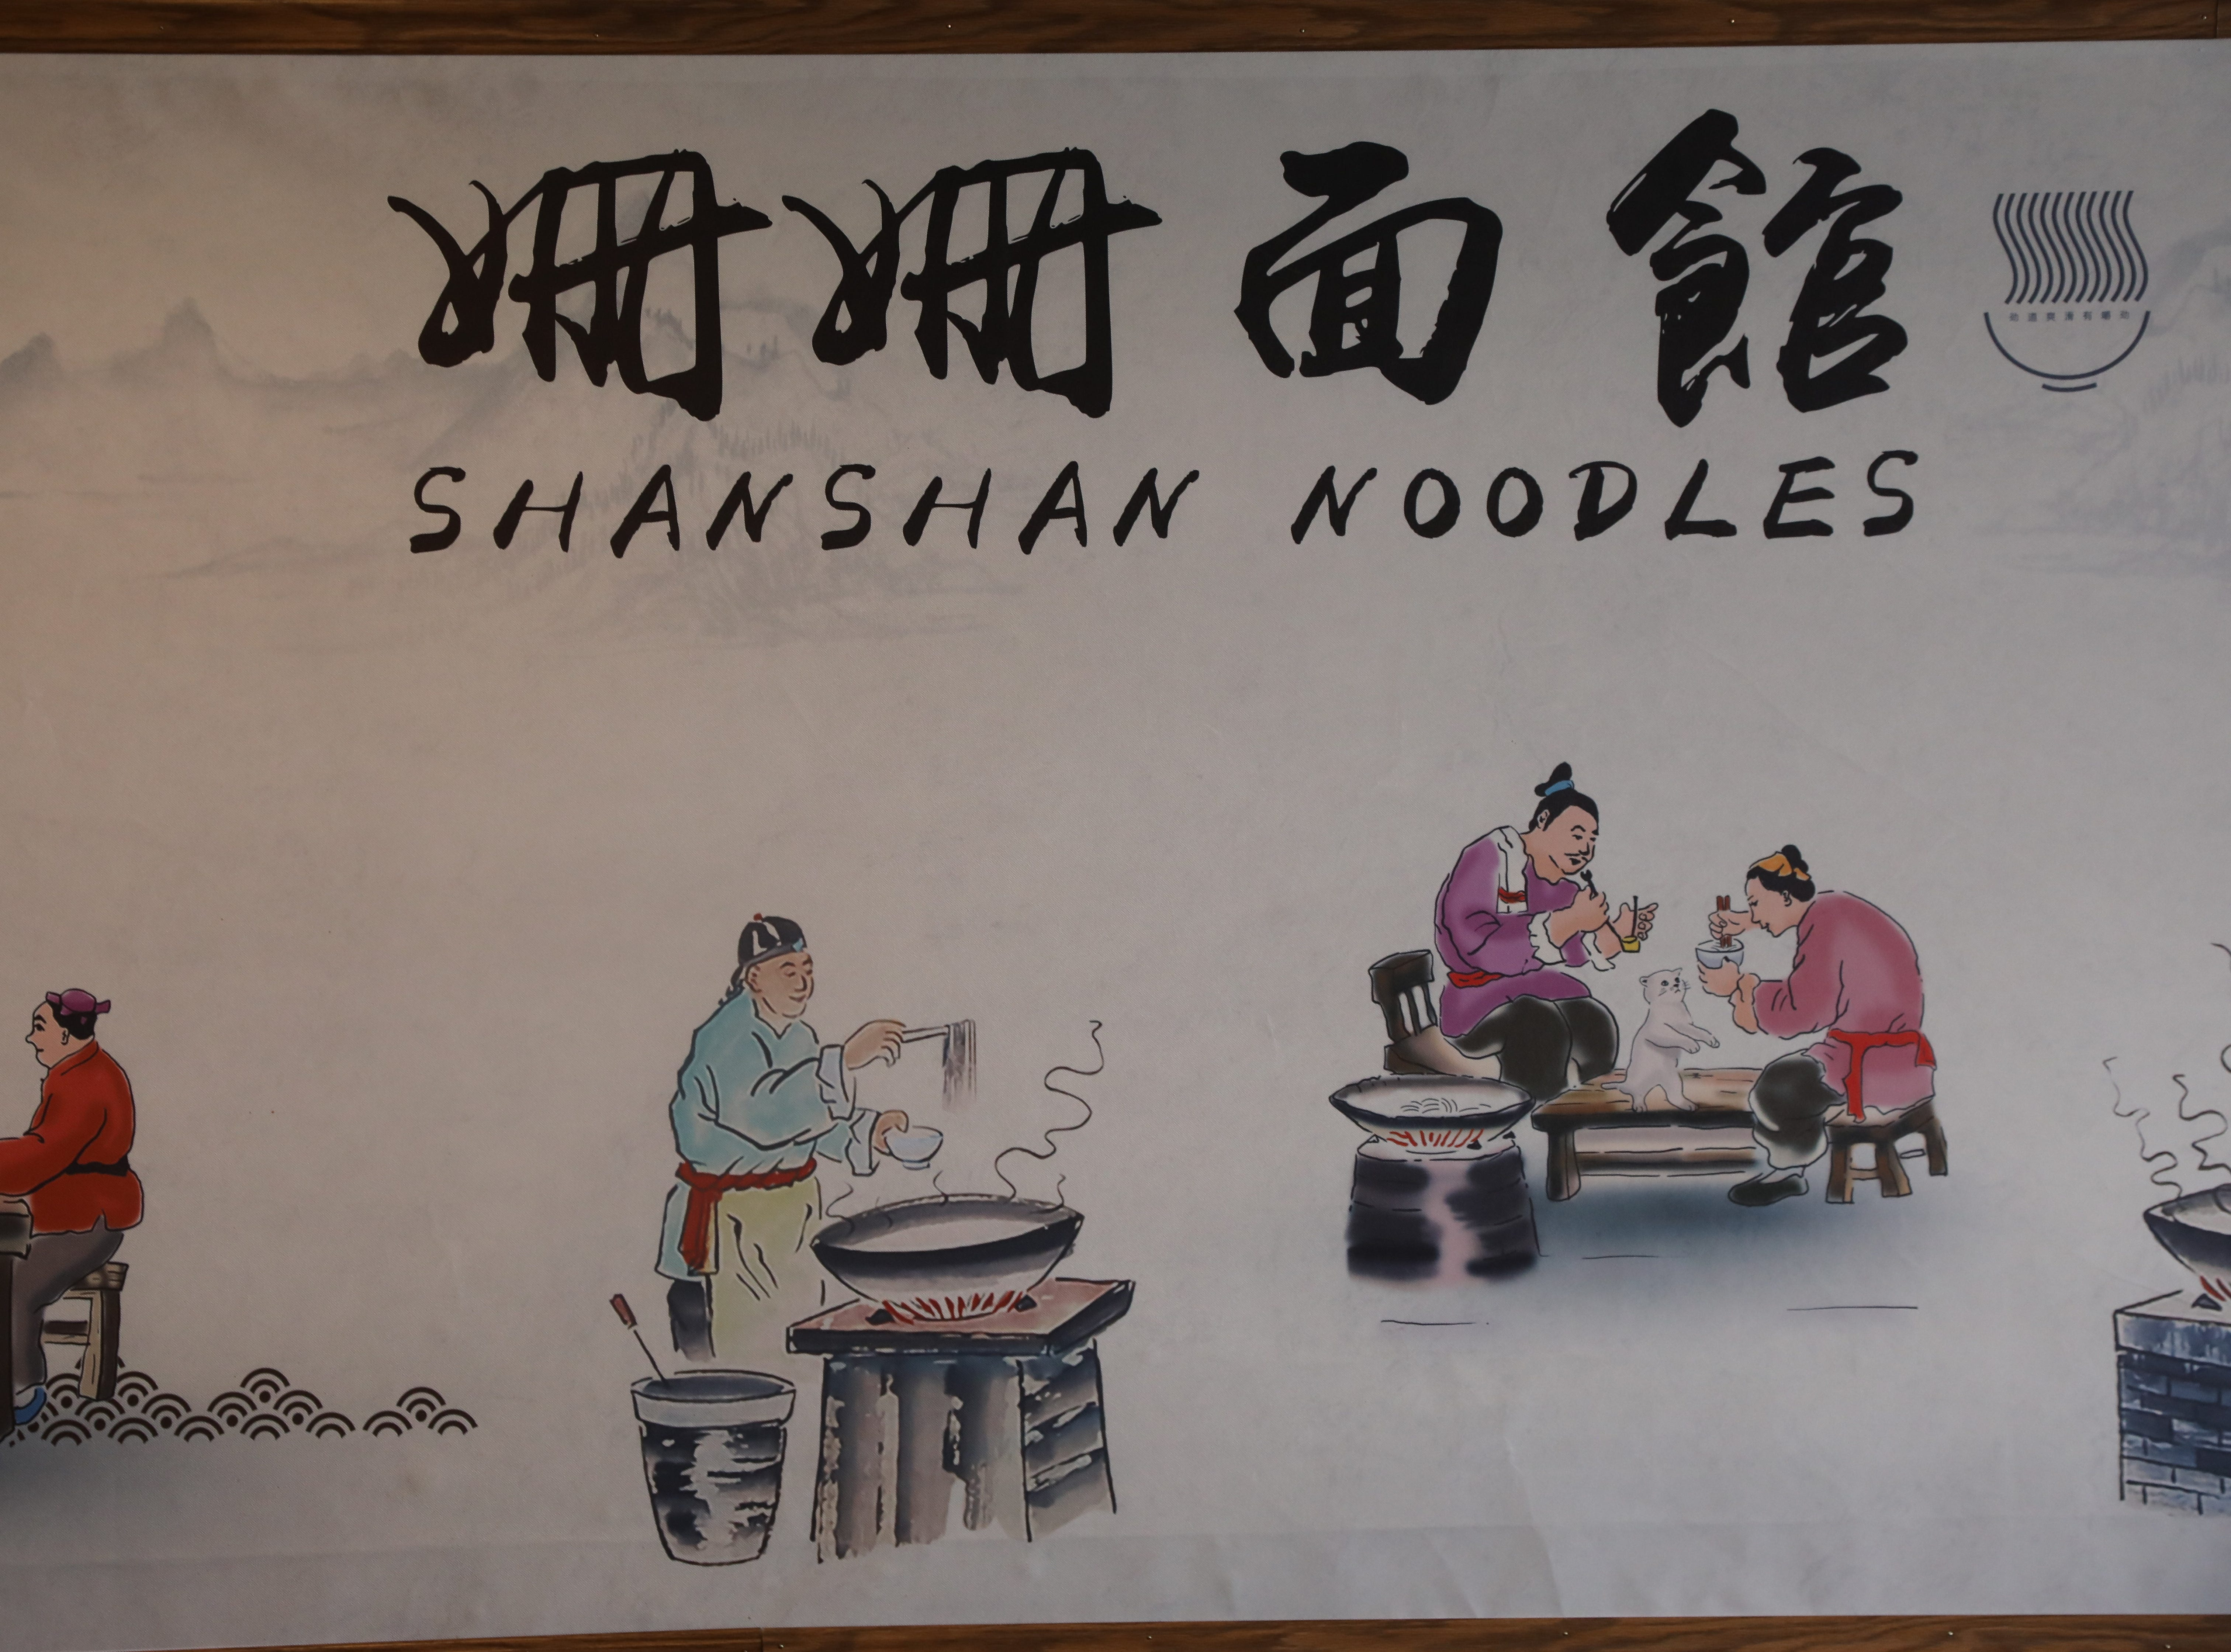 Part of the restaurant's decor at Shan Shan Noodles.